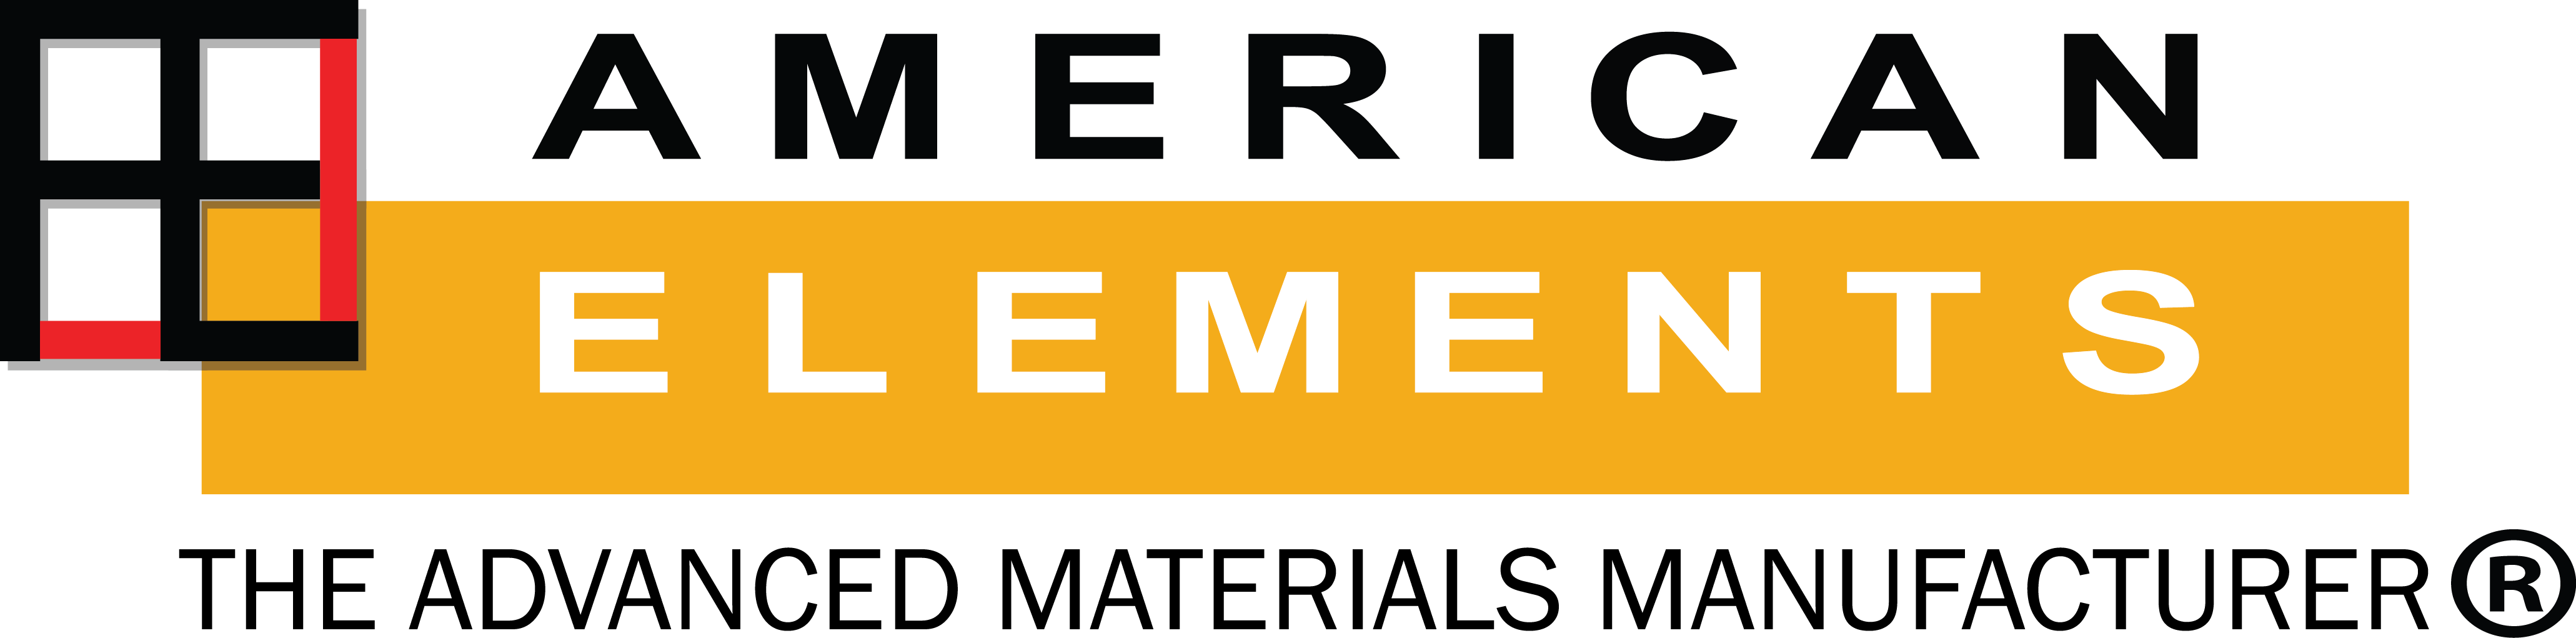 American Elements: global manufacturer of catalysts, nanomaterials, & composites for engineering in automotive, aerospace & thermoplastic processing materials